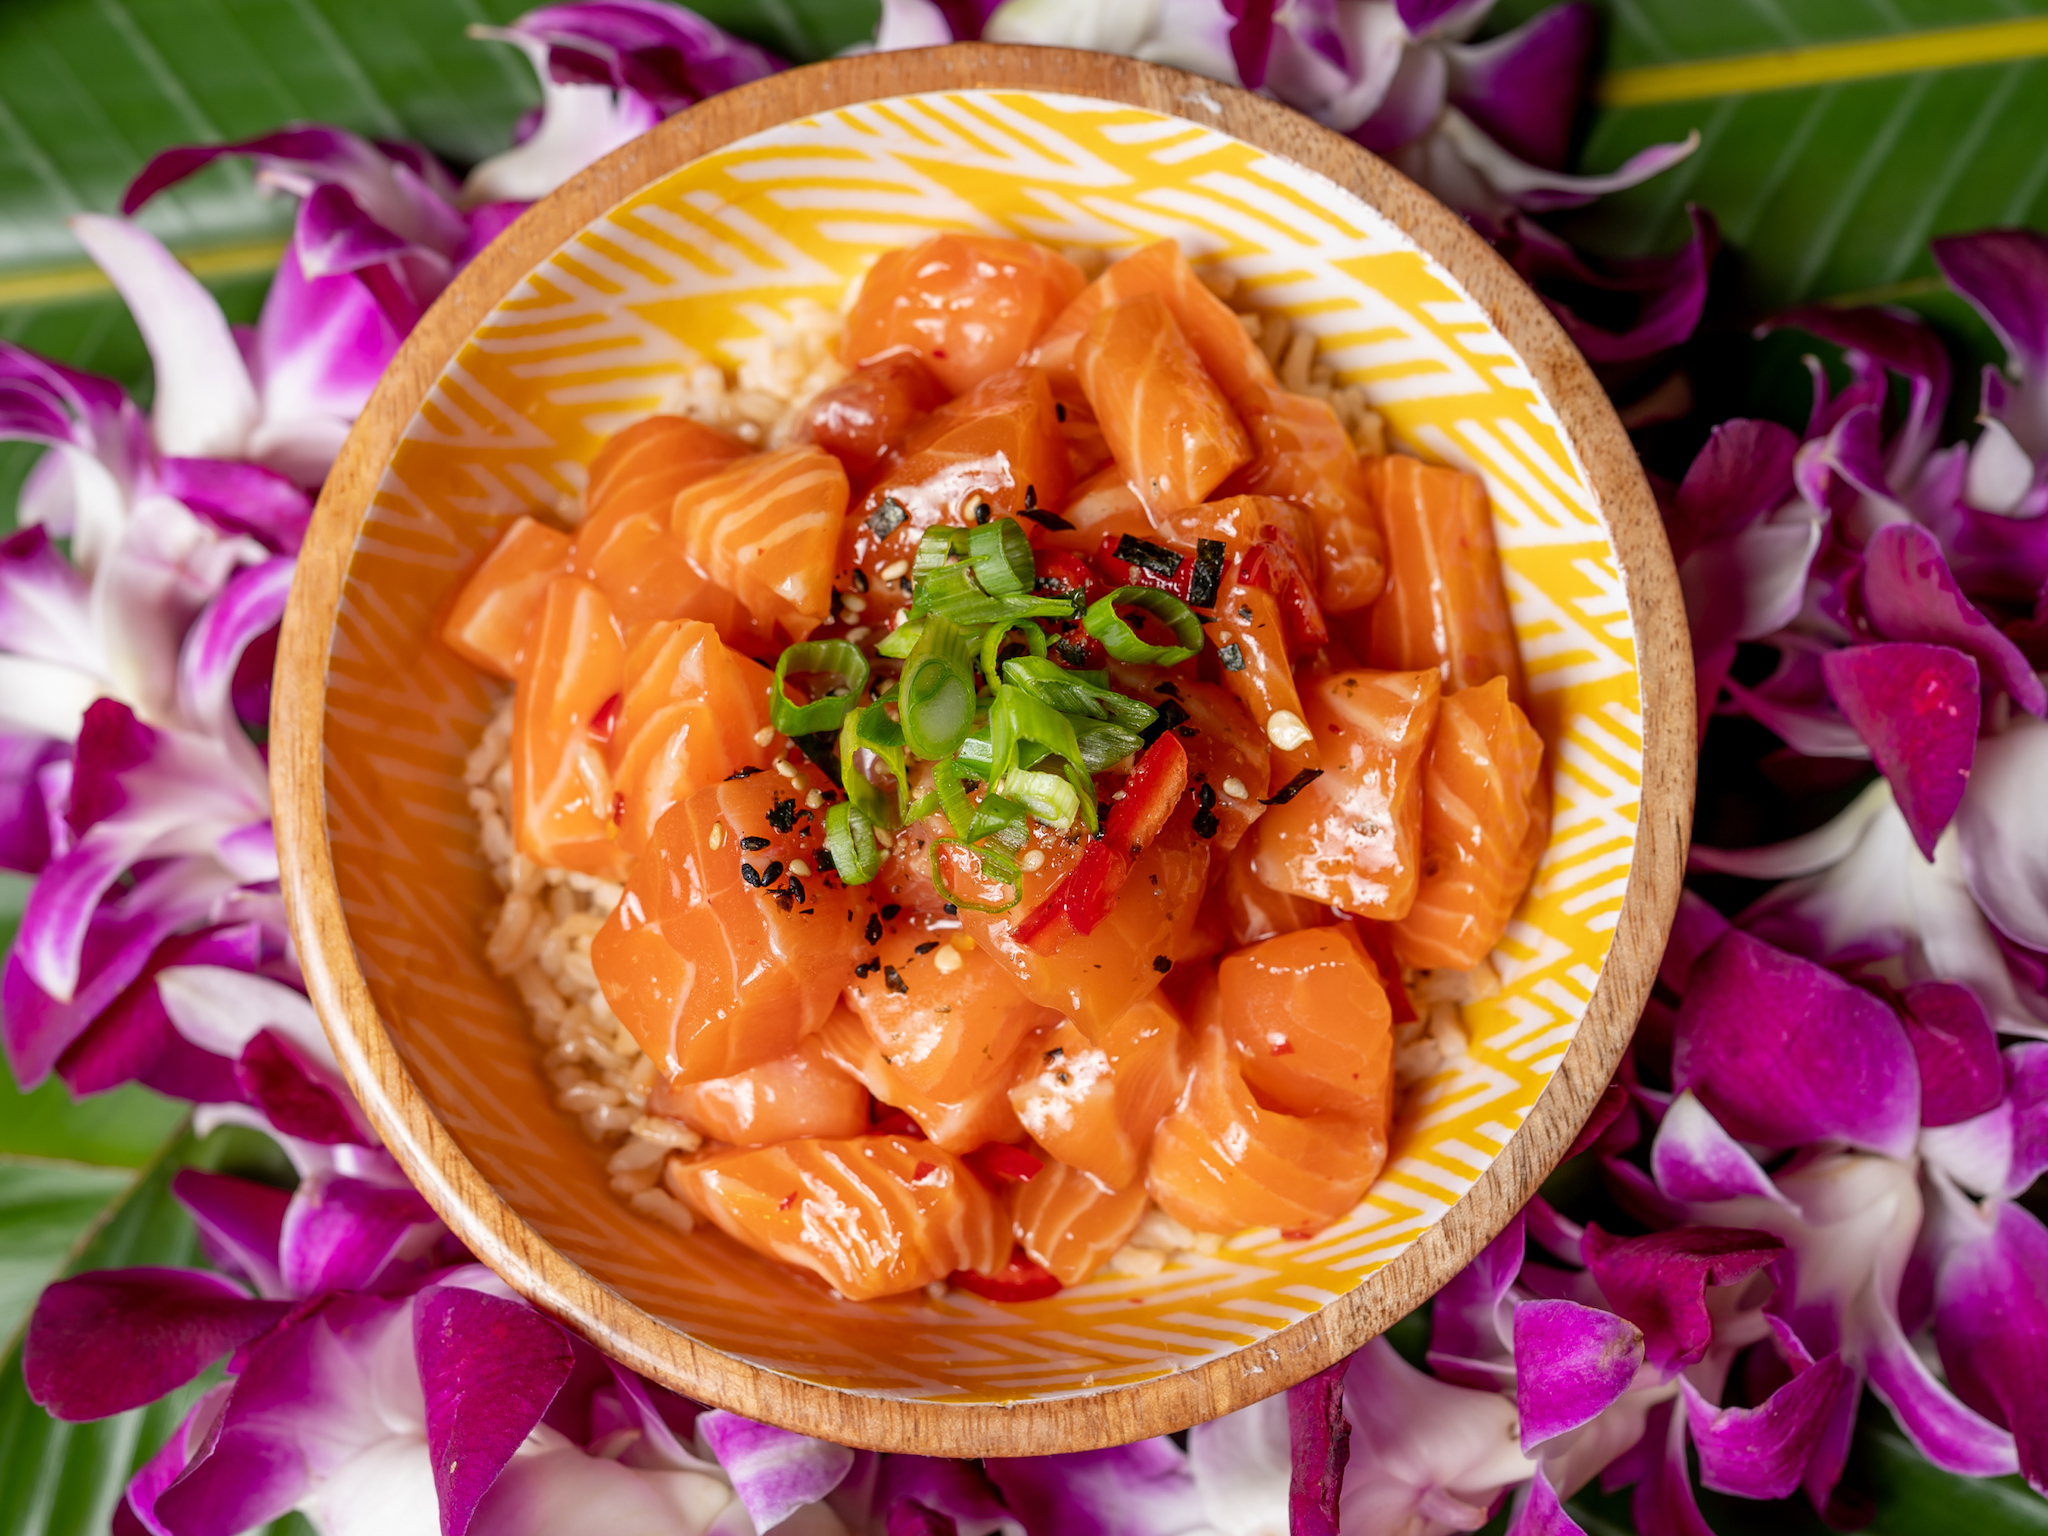 Say aloha to the sweet and spicy salmon poke at Time Out Market Miami